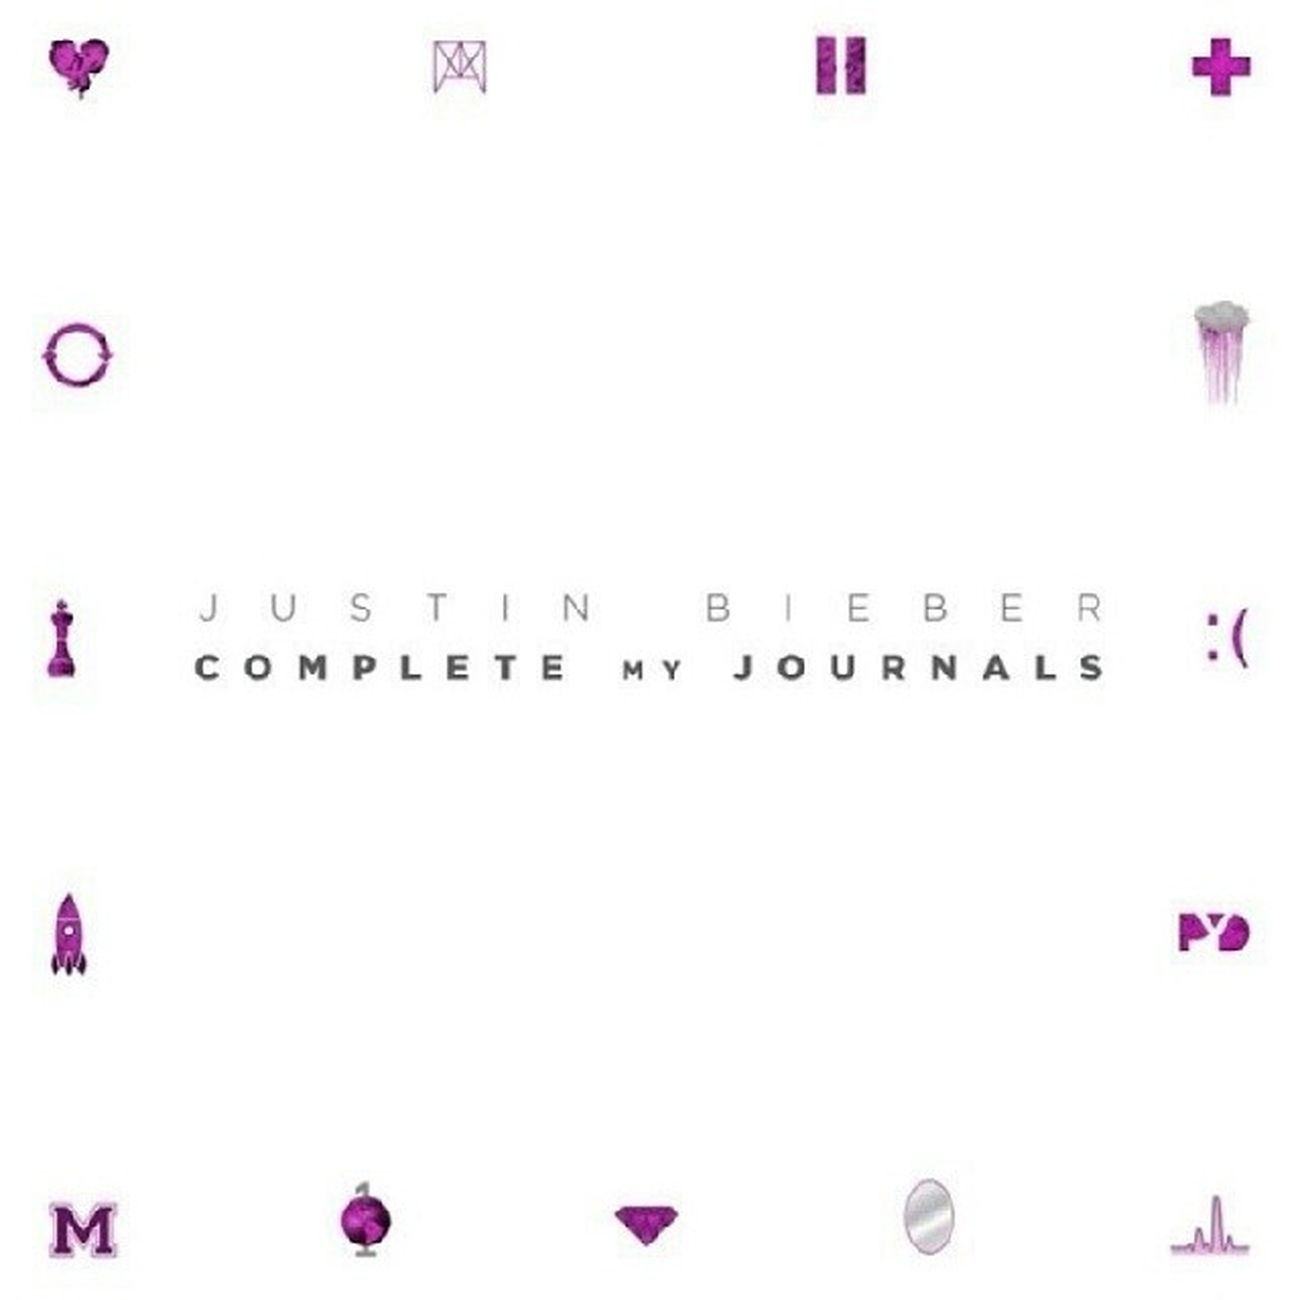 ITS OUT ! Journals Musicmondays Whatshatnin fav song